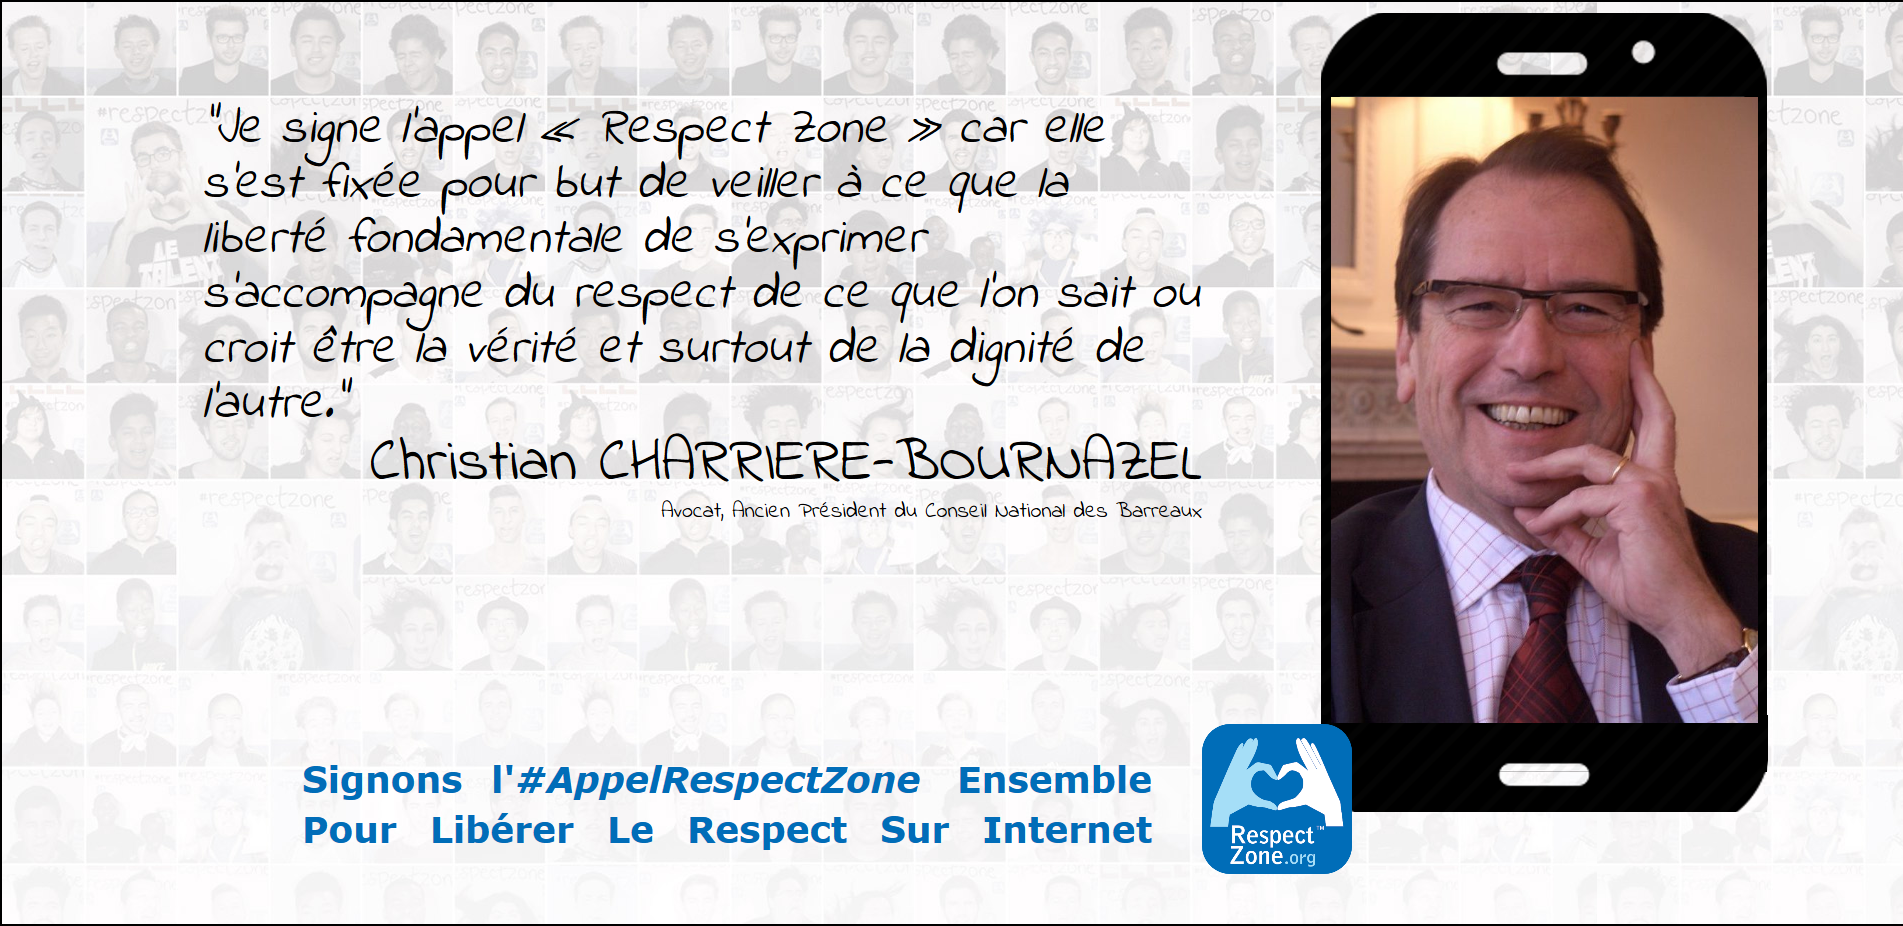 Christian CHARRIERE-BOURNAZEL